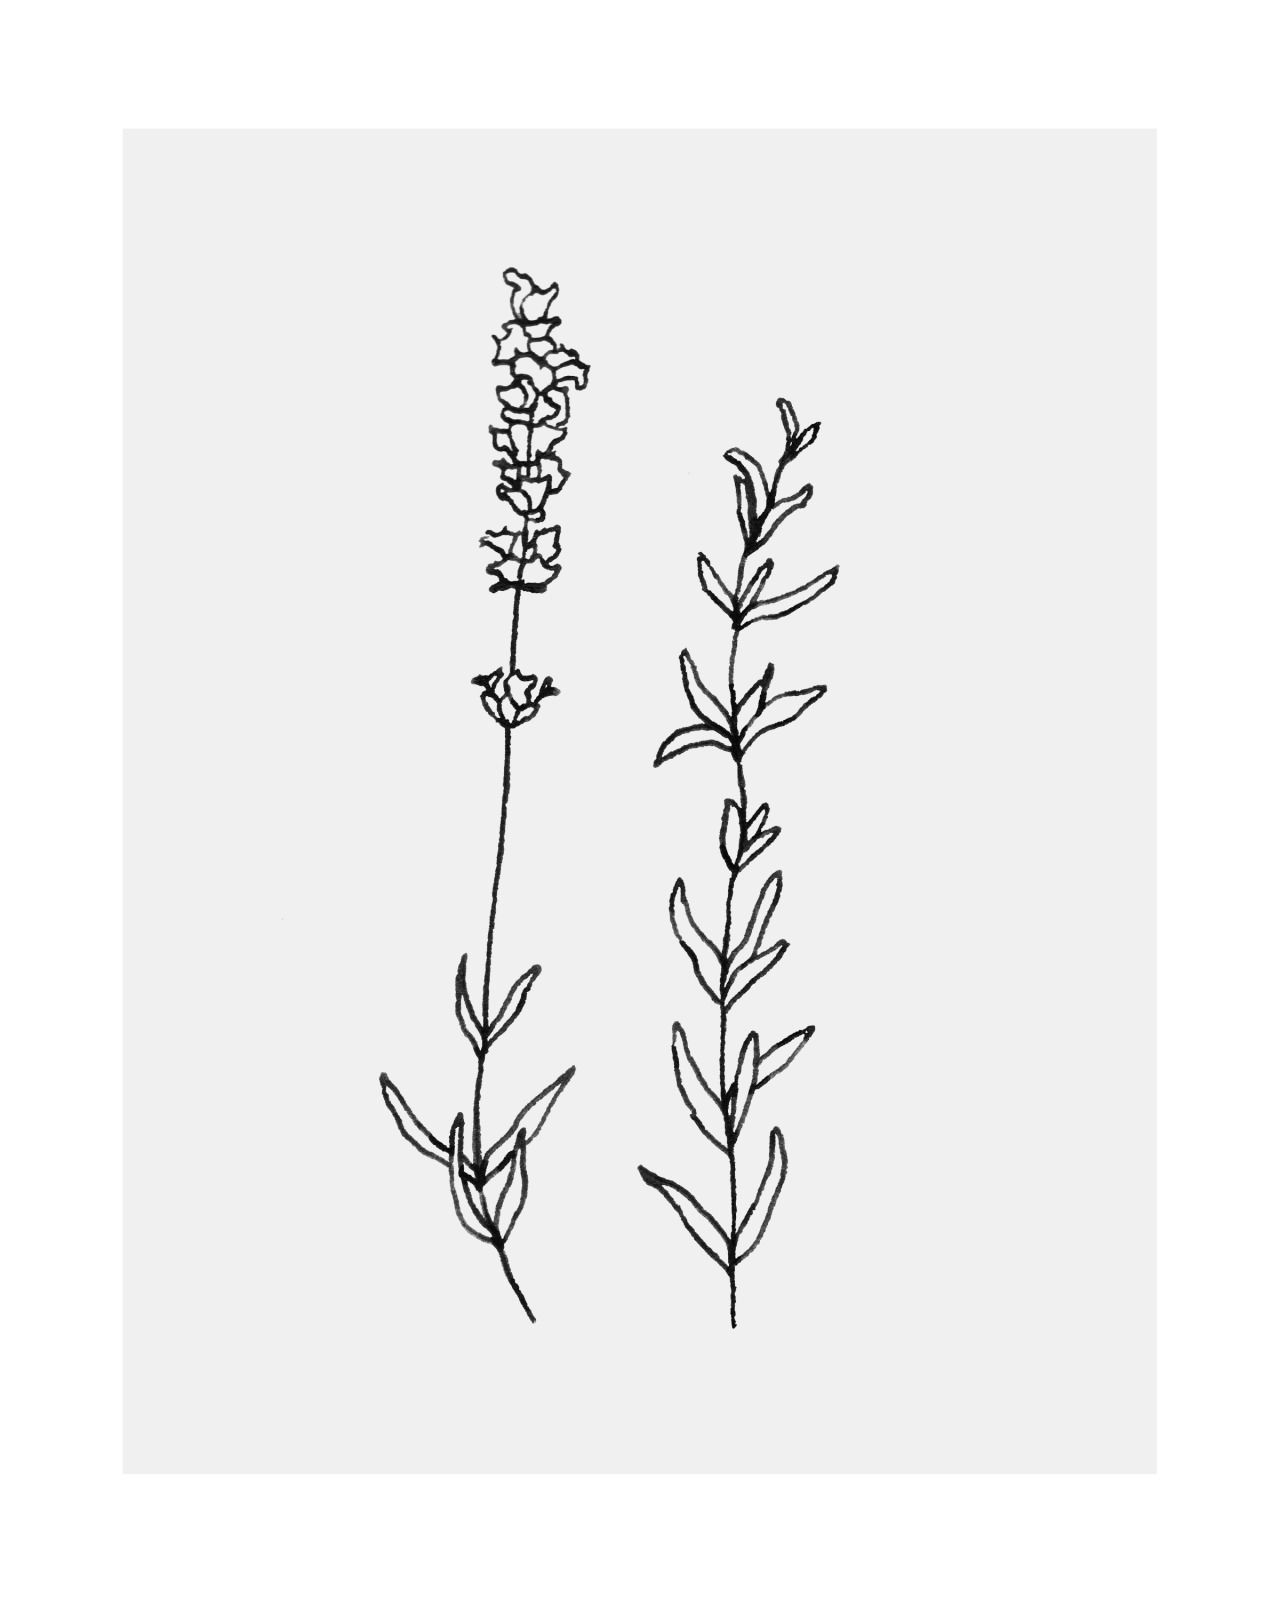 Hometattoo A Sprig Of Lavender And Rosemary